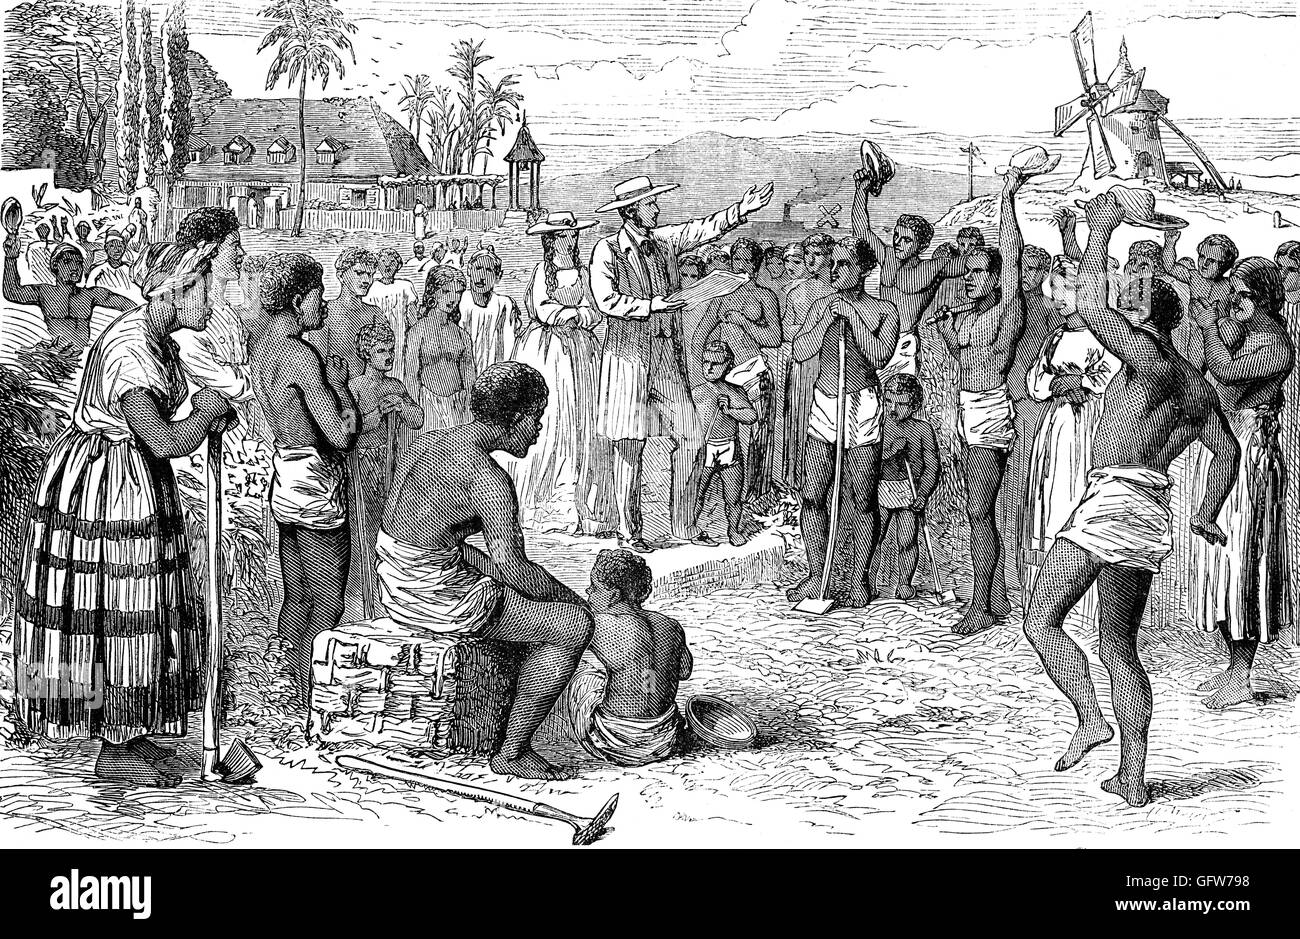 Following The Abolition Of Slavery In British Empire Slaves On A West Indian Plantation Are Given Their Freedom